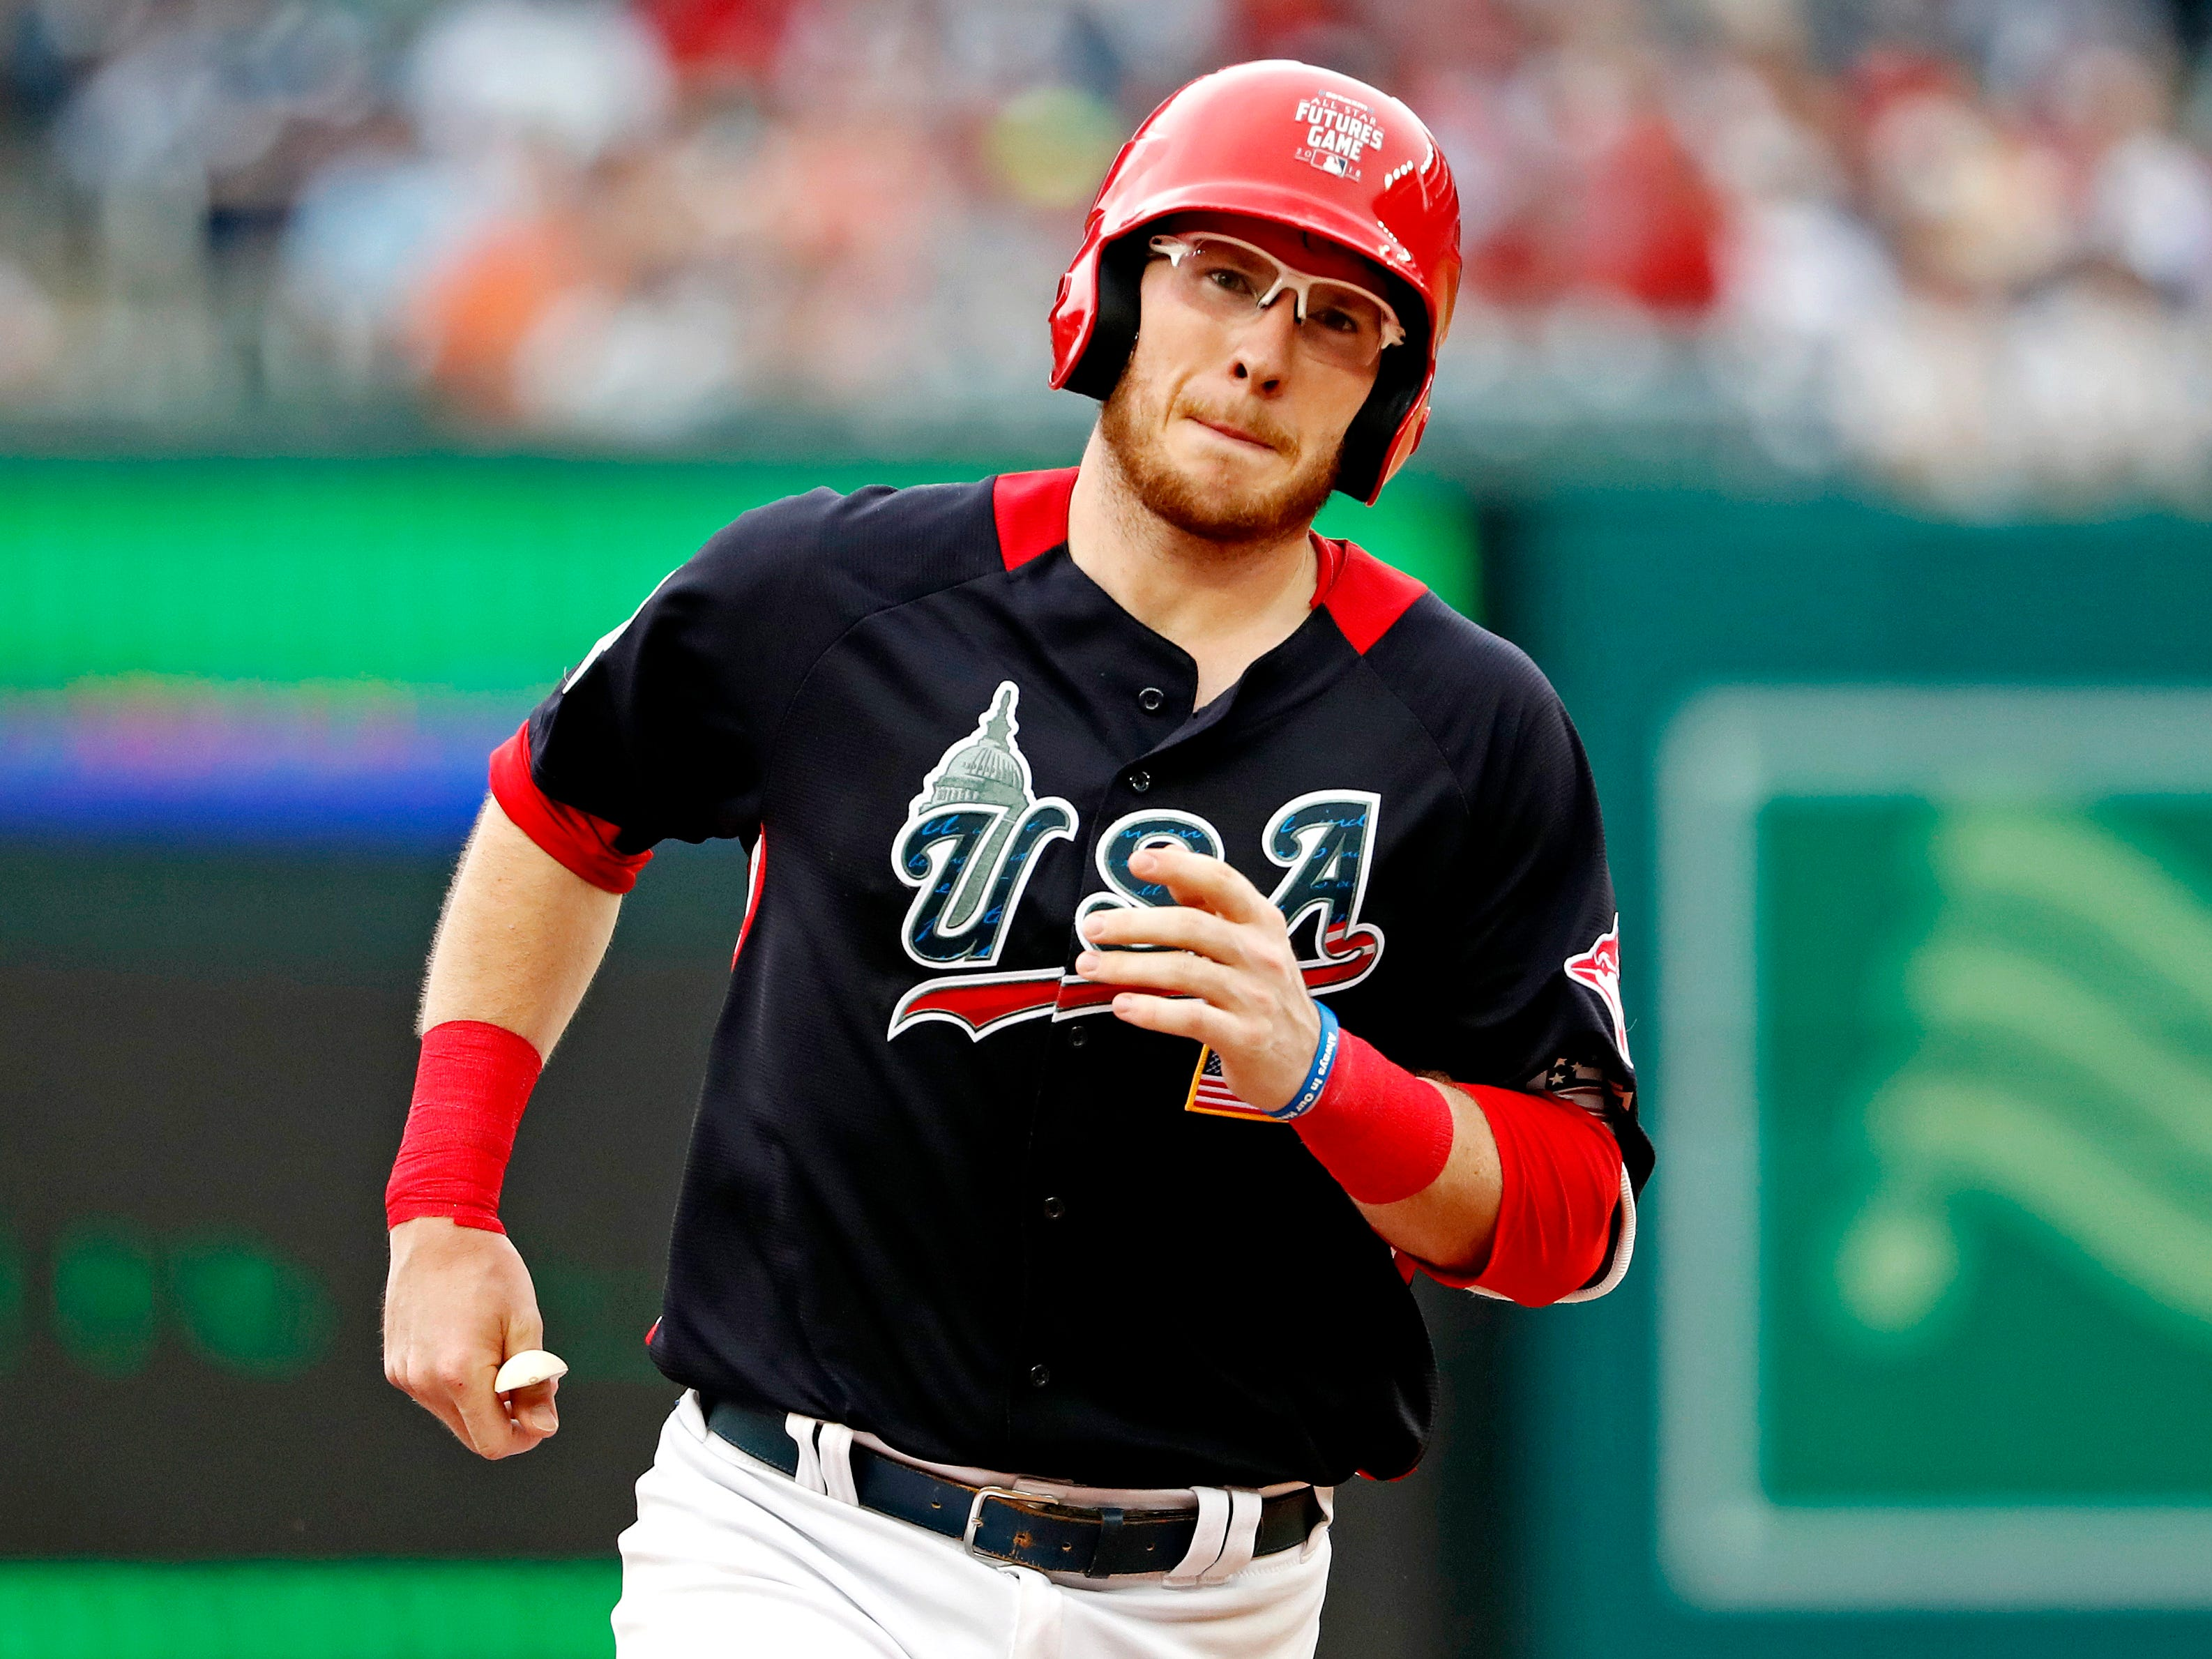 Jul 15, 2018; Washington, DC, USA; USA catcher Danny Jansen (9) rounds the bases after hitting a two run home run in the fourth inning against the World Team during the 2018 All Star Futures Game at Nationals Ballpark. Mandatory Credit: Geoff Burke-USA TODAY Sports